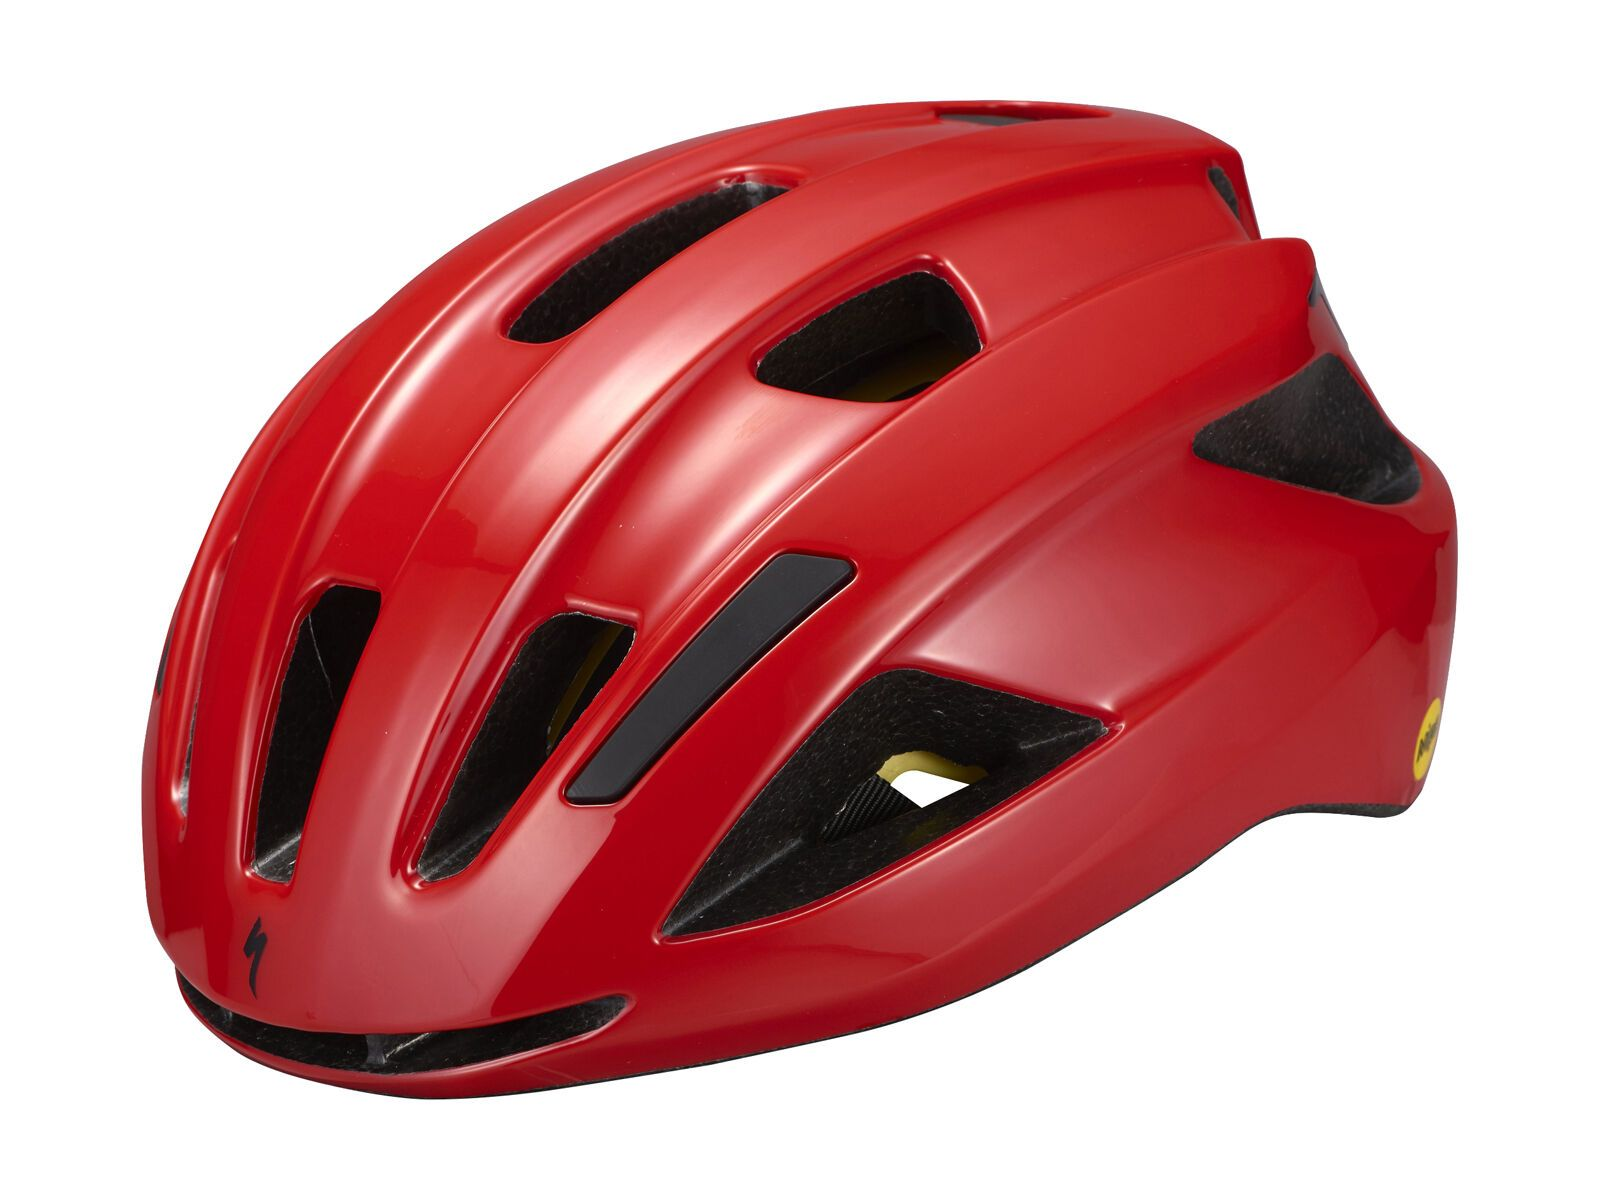 Specialized Align II MIPS, gloss flo red - Fahrradhelm, Größe S/M // 52-56 cm 60821-1062